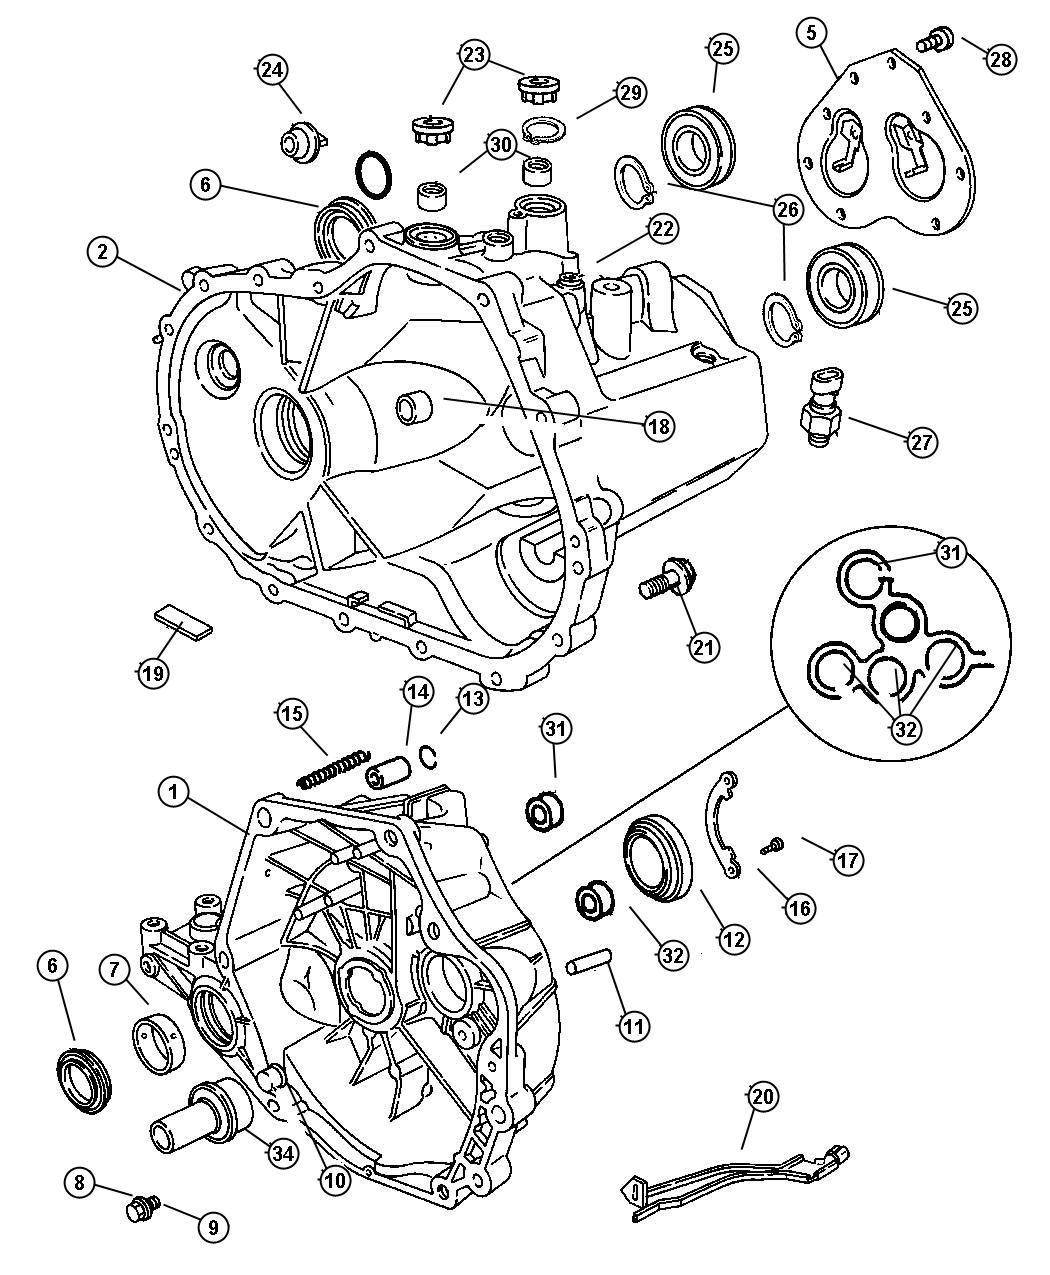 27 Chrysler Pacifica Serpentine Belt Diagram